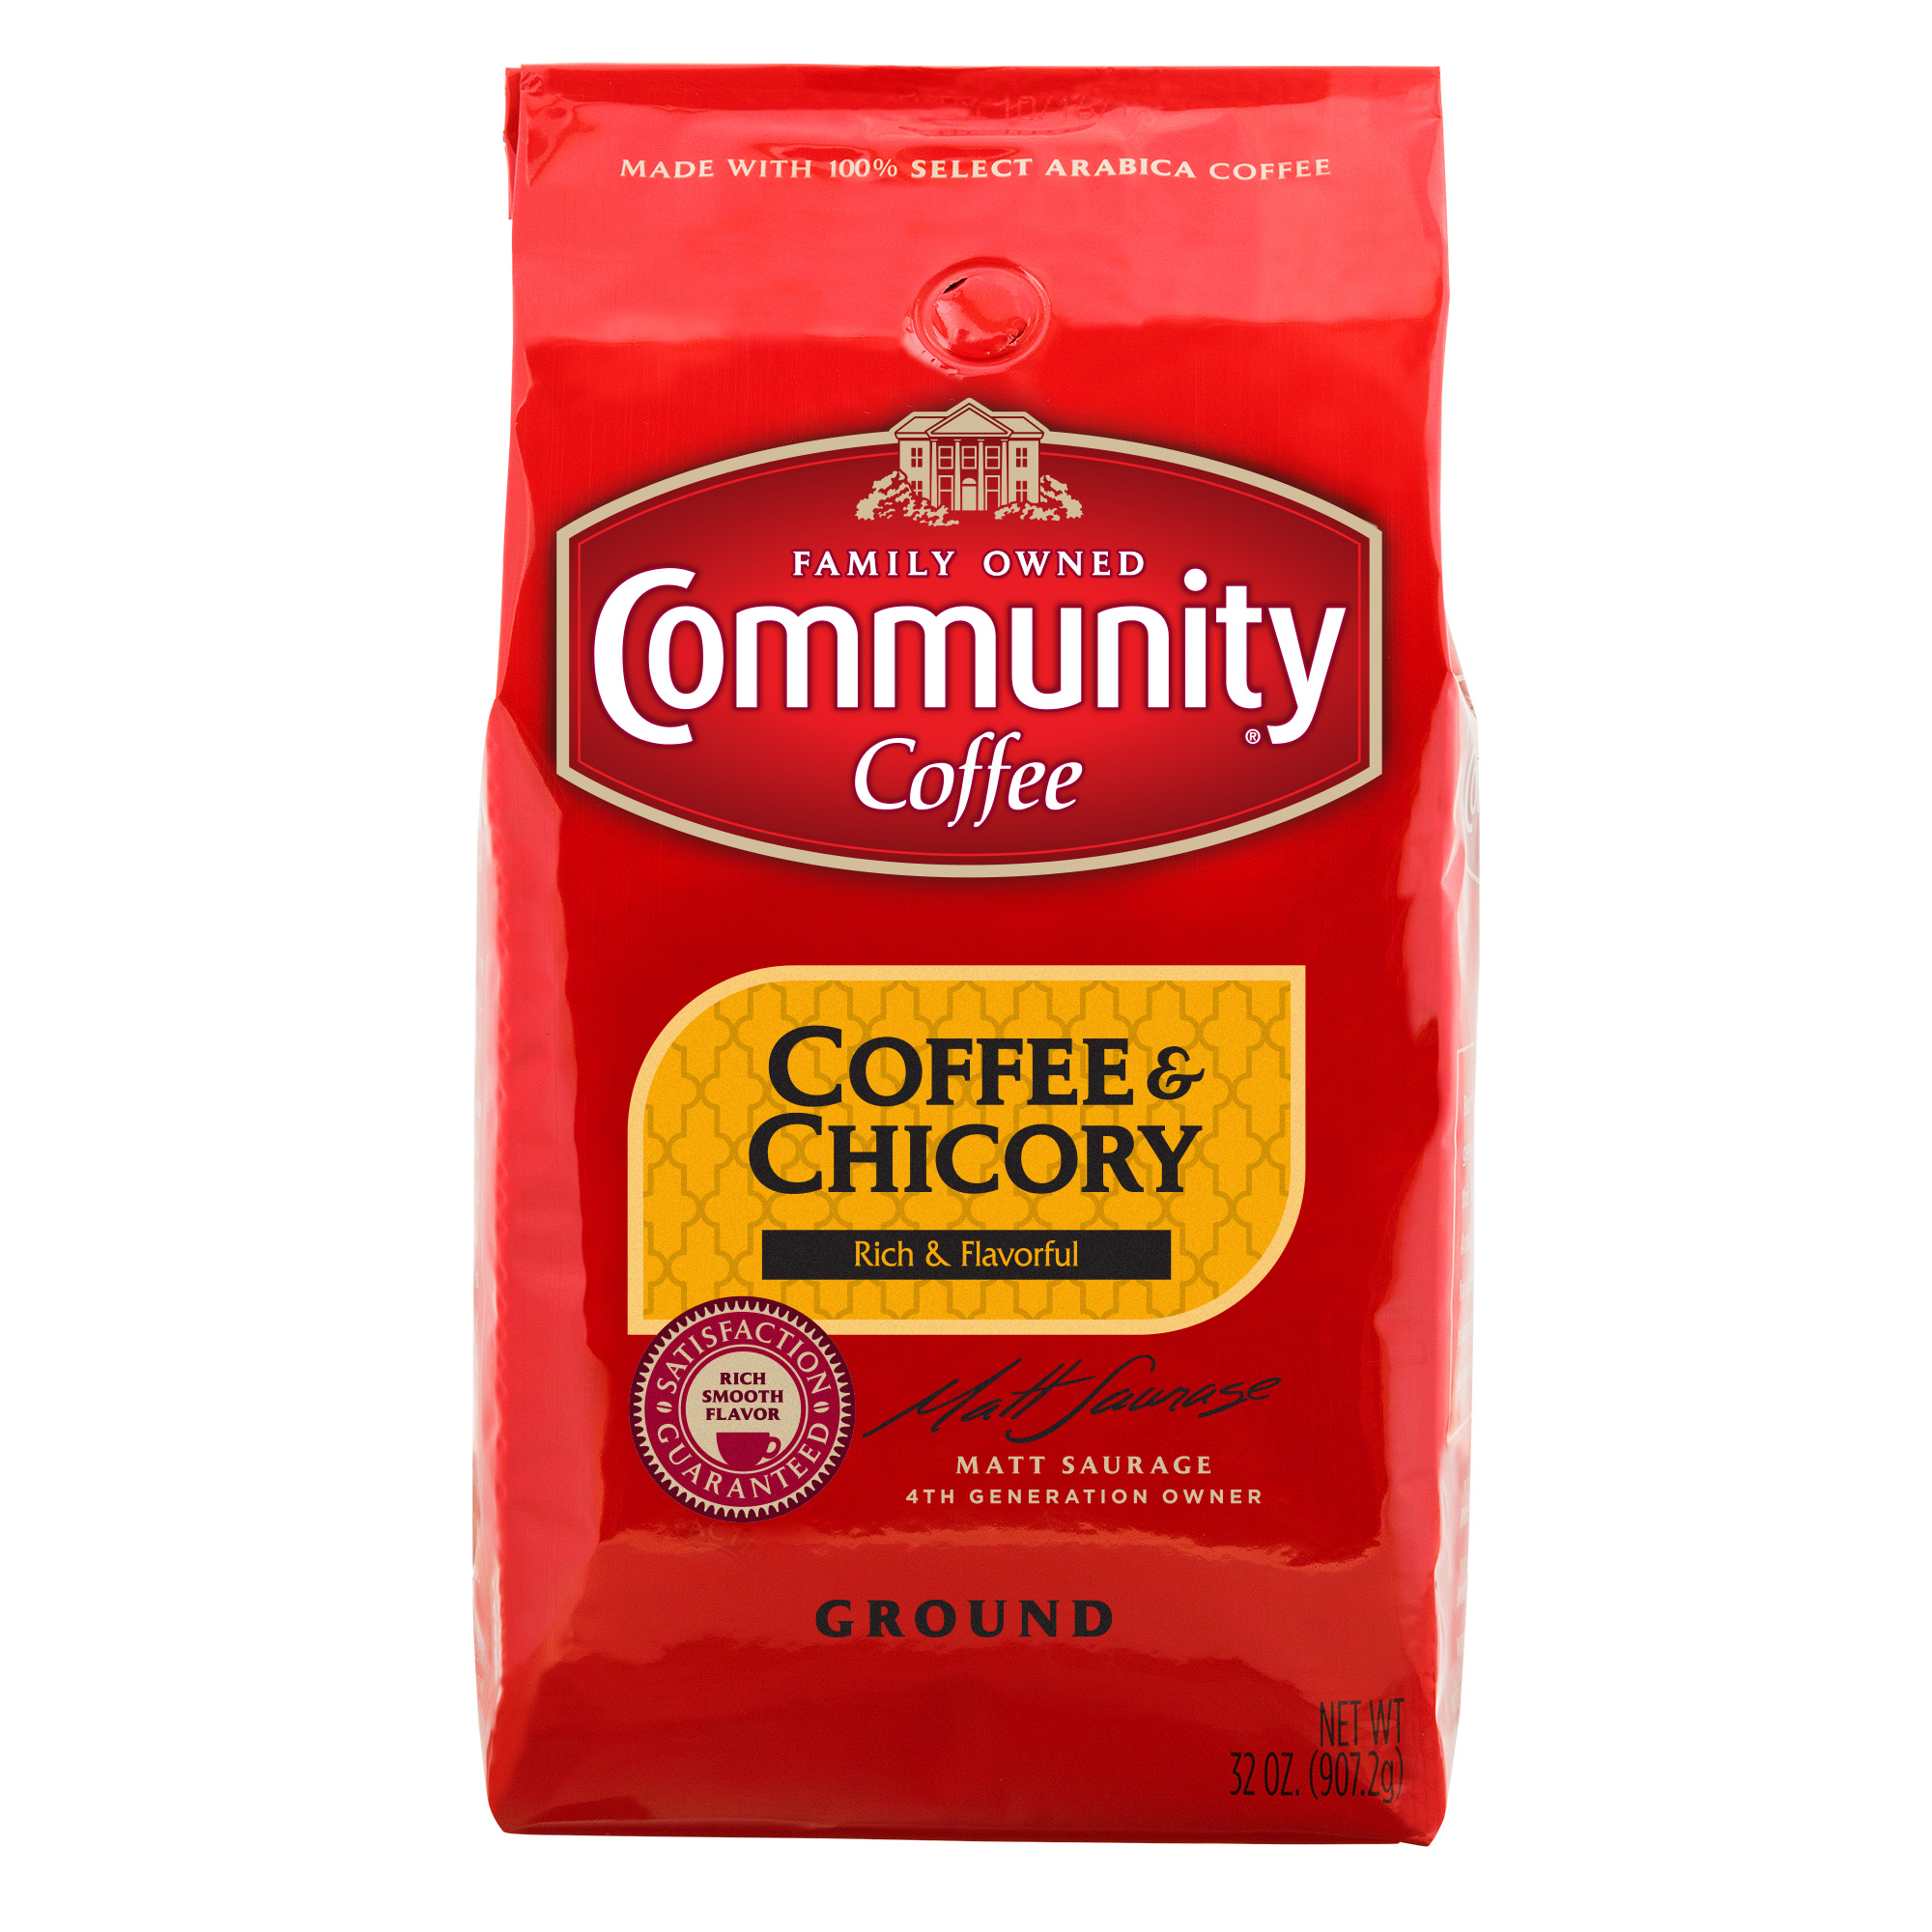 Community Coffee Premium Ground Coffee and Chicory Medium-Dark Roast Coffee, 32 Ounce